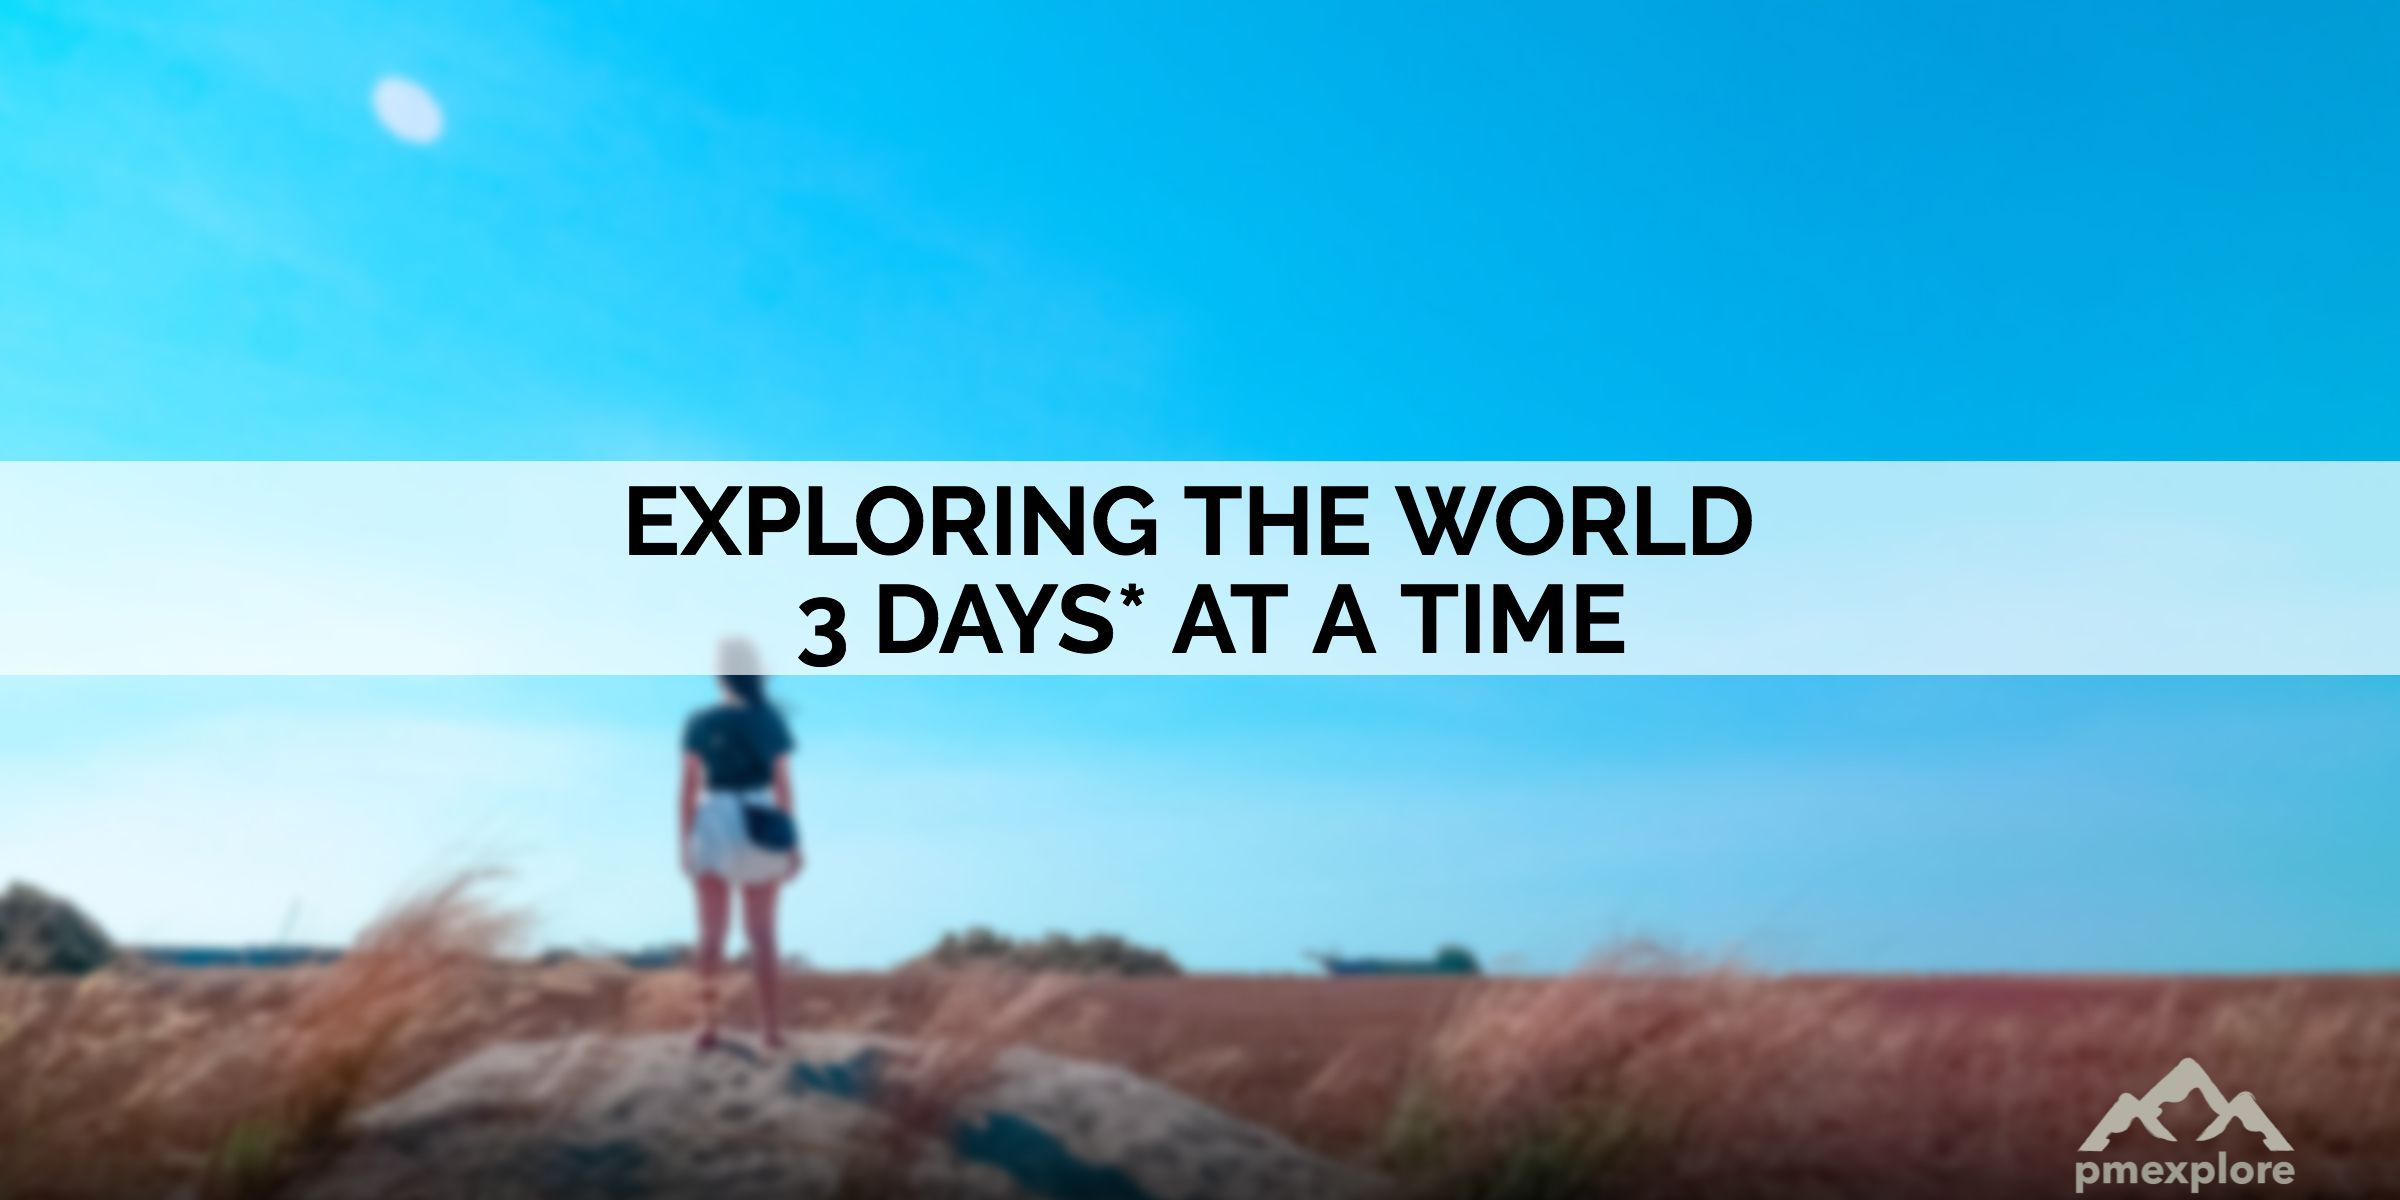 Exploring the World – 3 DAYS* at a Time